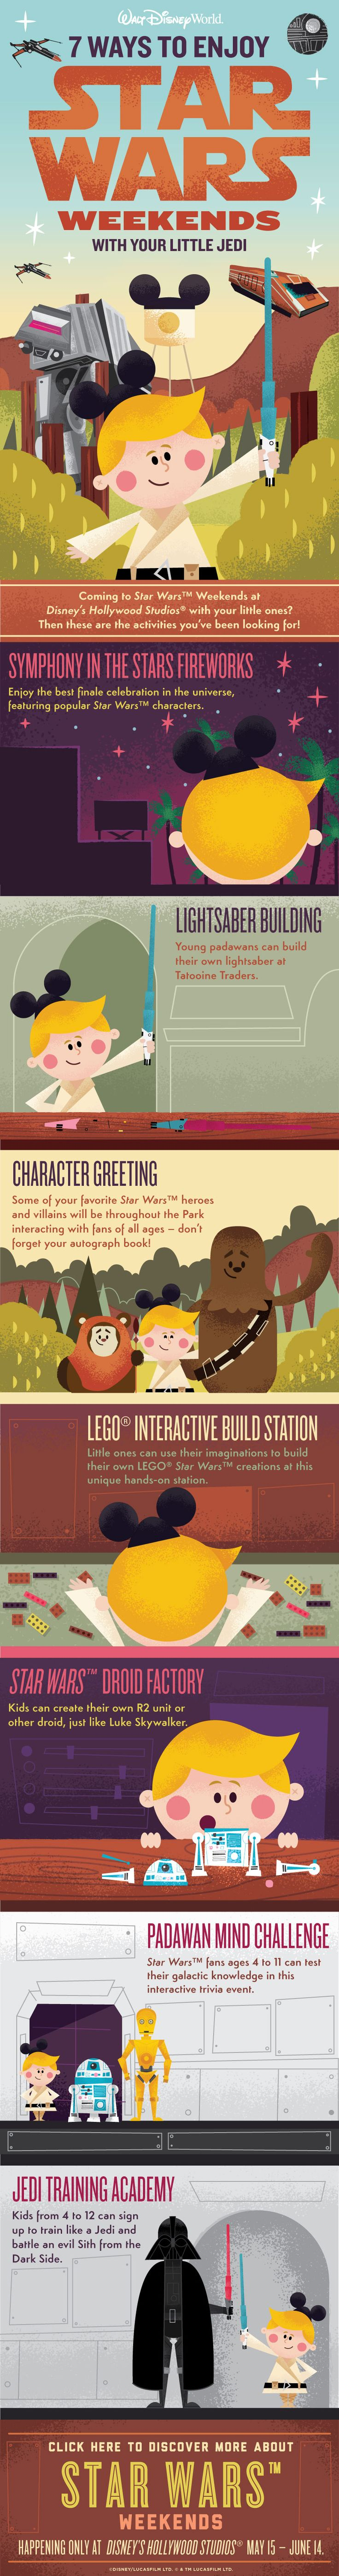 Don't miss Star Wars Weekends at Disney's Hollywood Studios, now through June 14, 2015! Enjoy out of this world entertainment including talk shows, celebrity motorcade and a spectacular fireworks show that the Rebel Alliance would approve of. See how your toddler can enjoy this seasonal event just as much as you with these great tips!